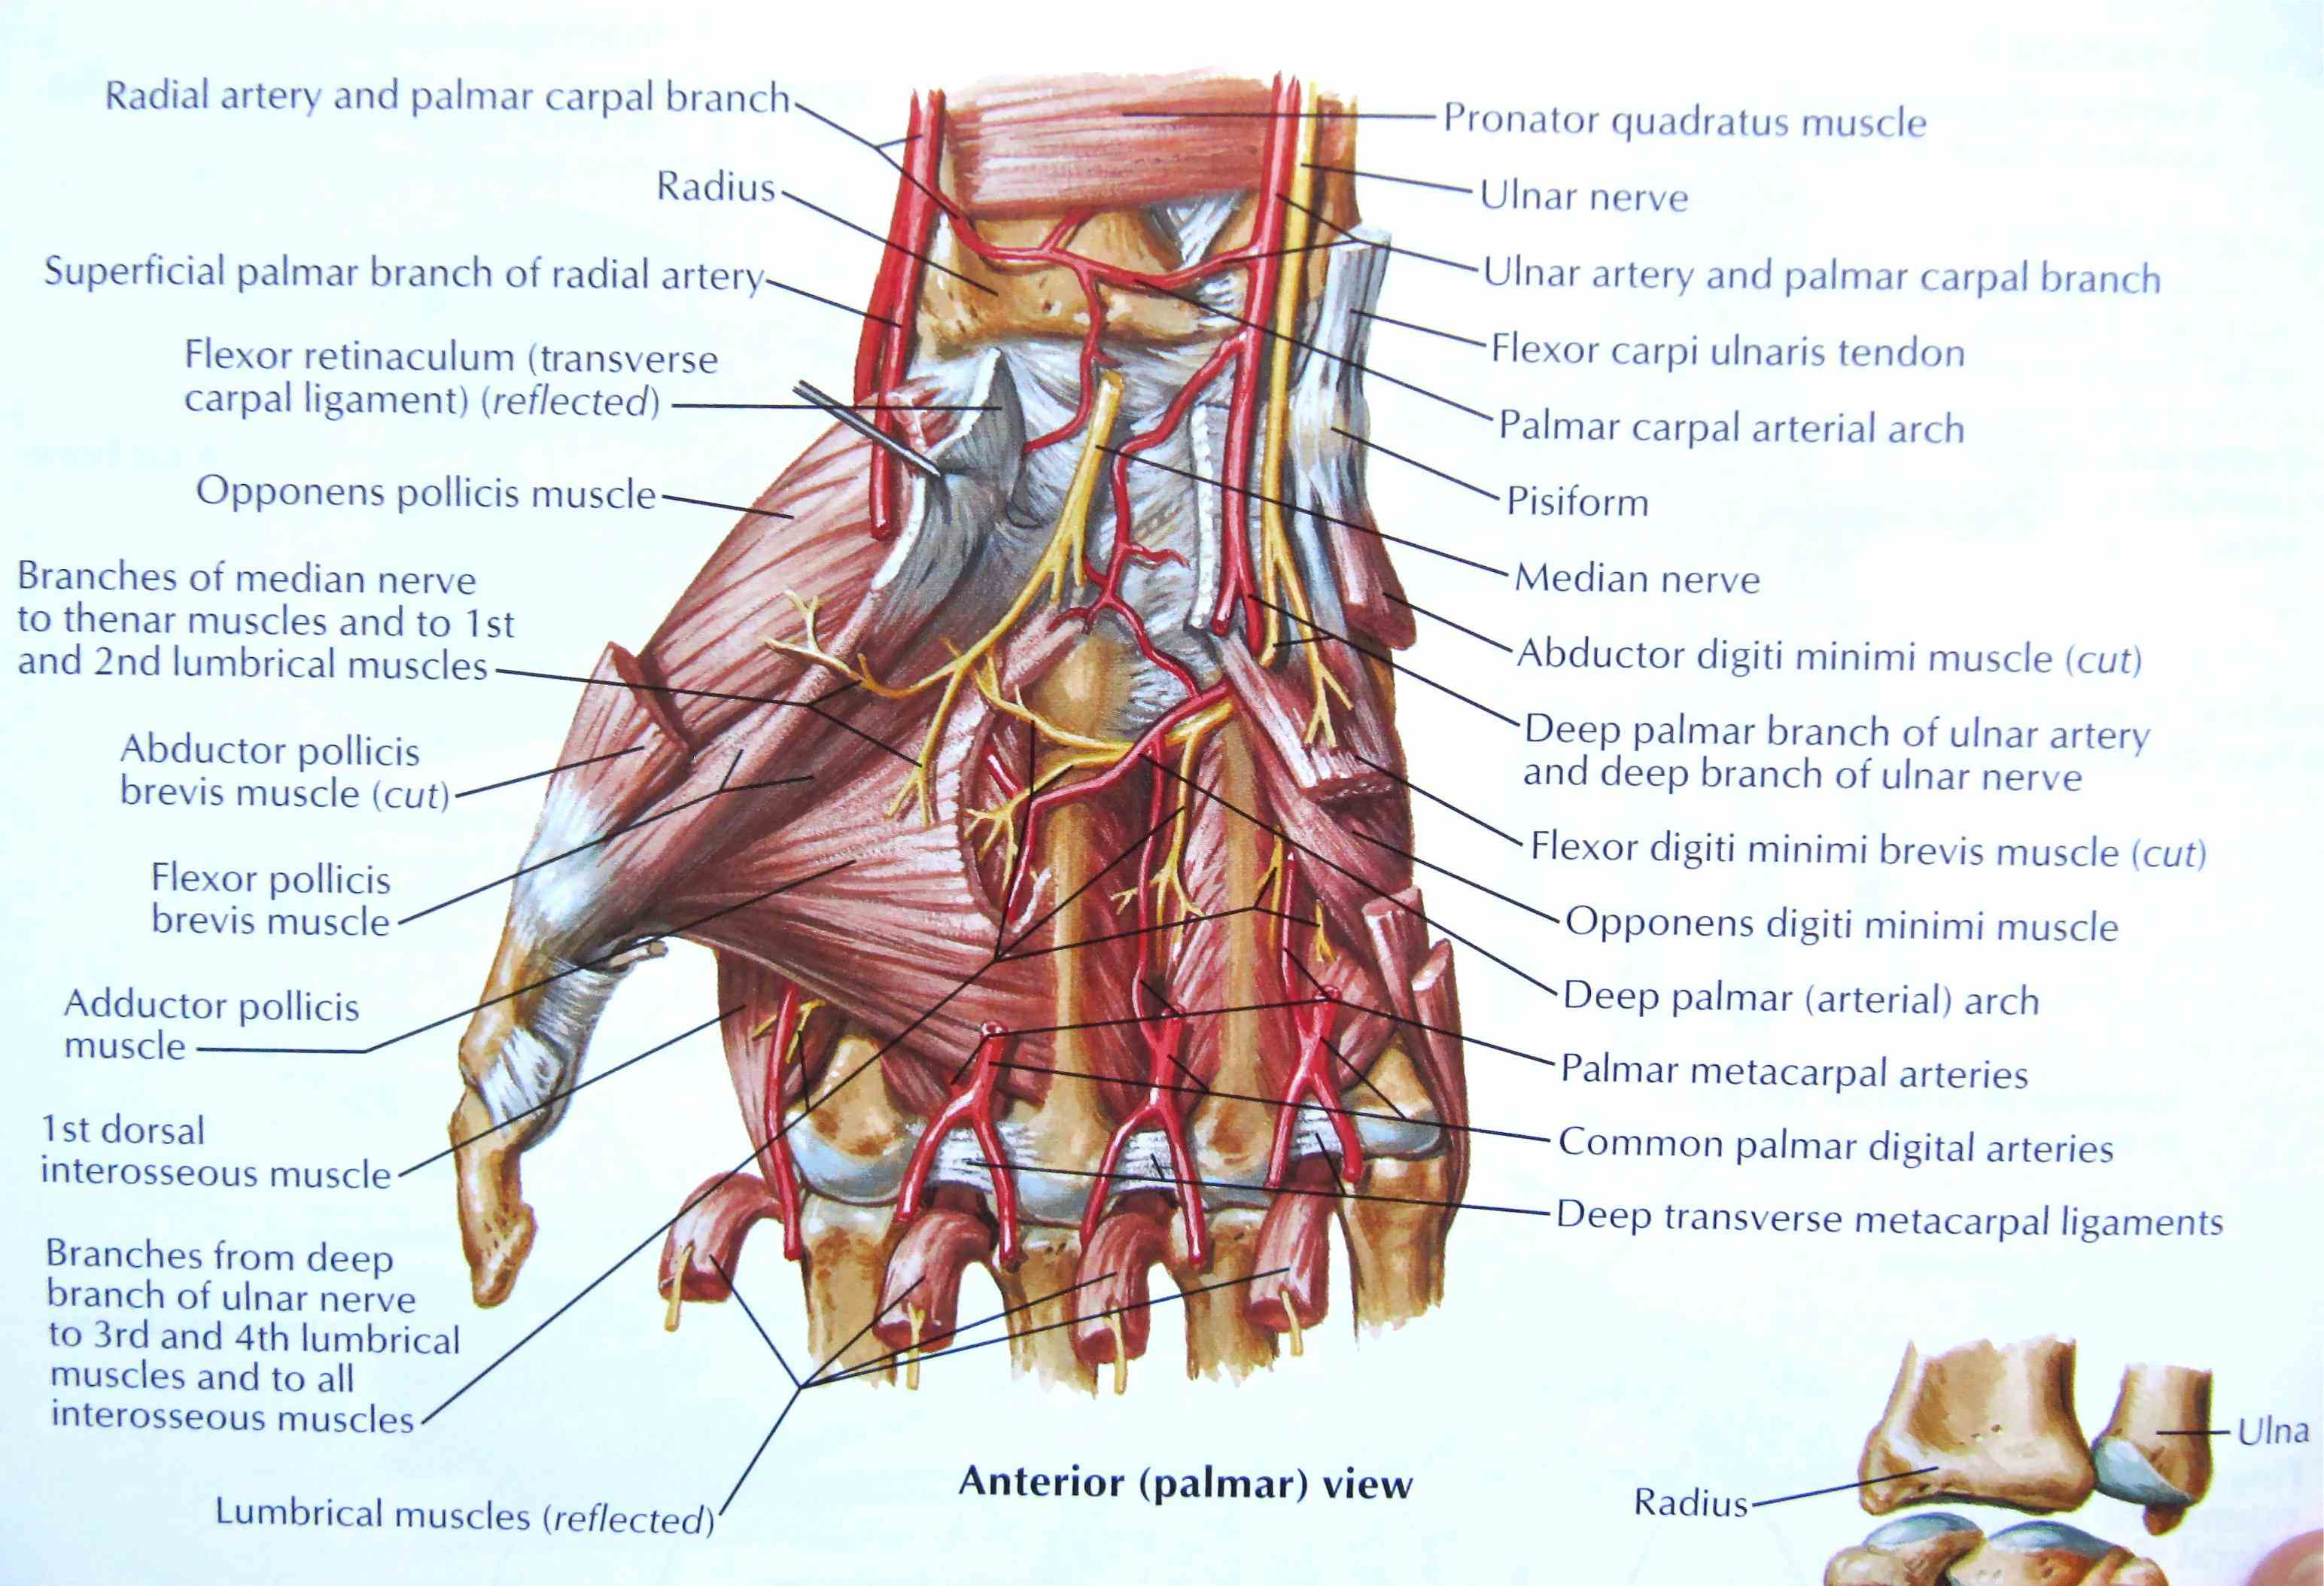 upper extremity are common problems a wide range physicians from primary care providers to specialists even Anatomy Of The